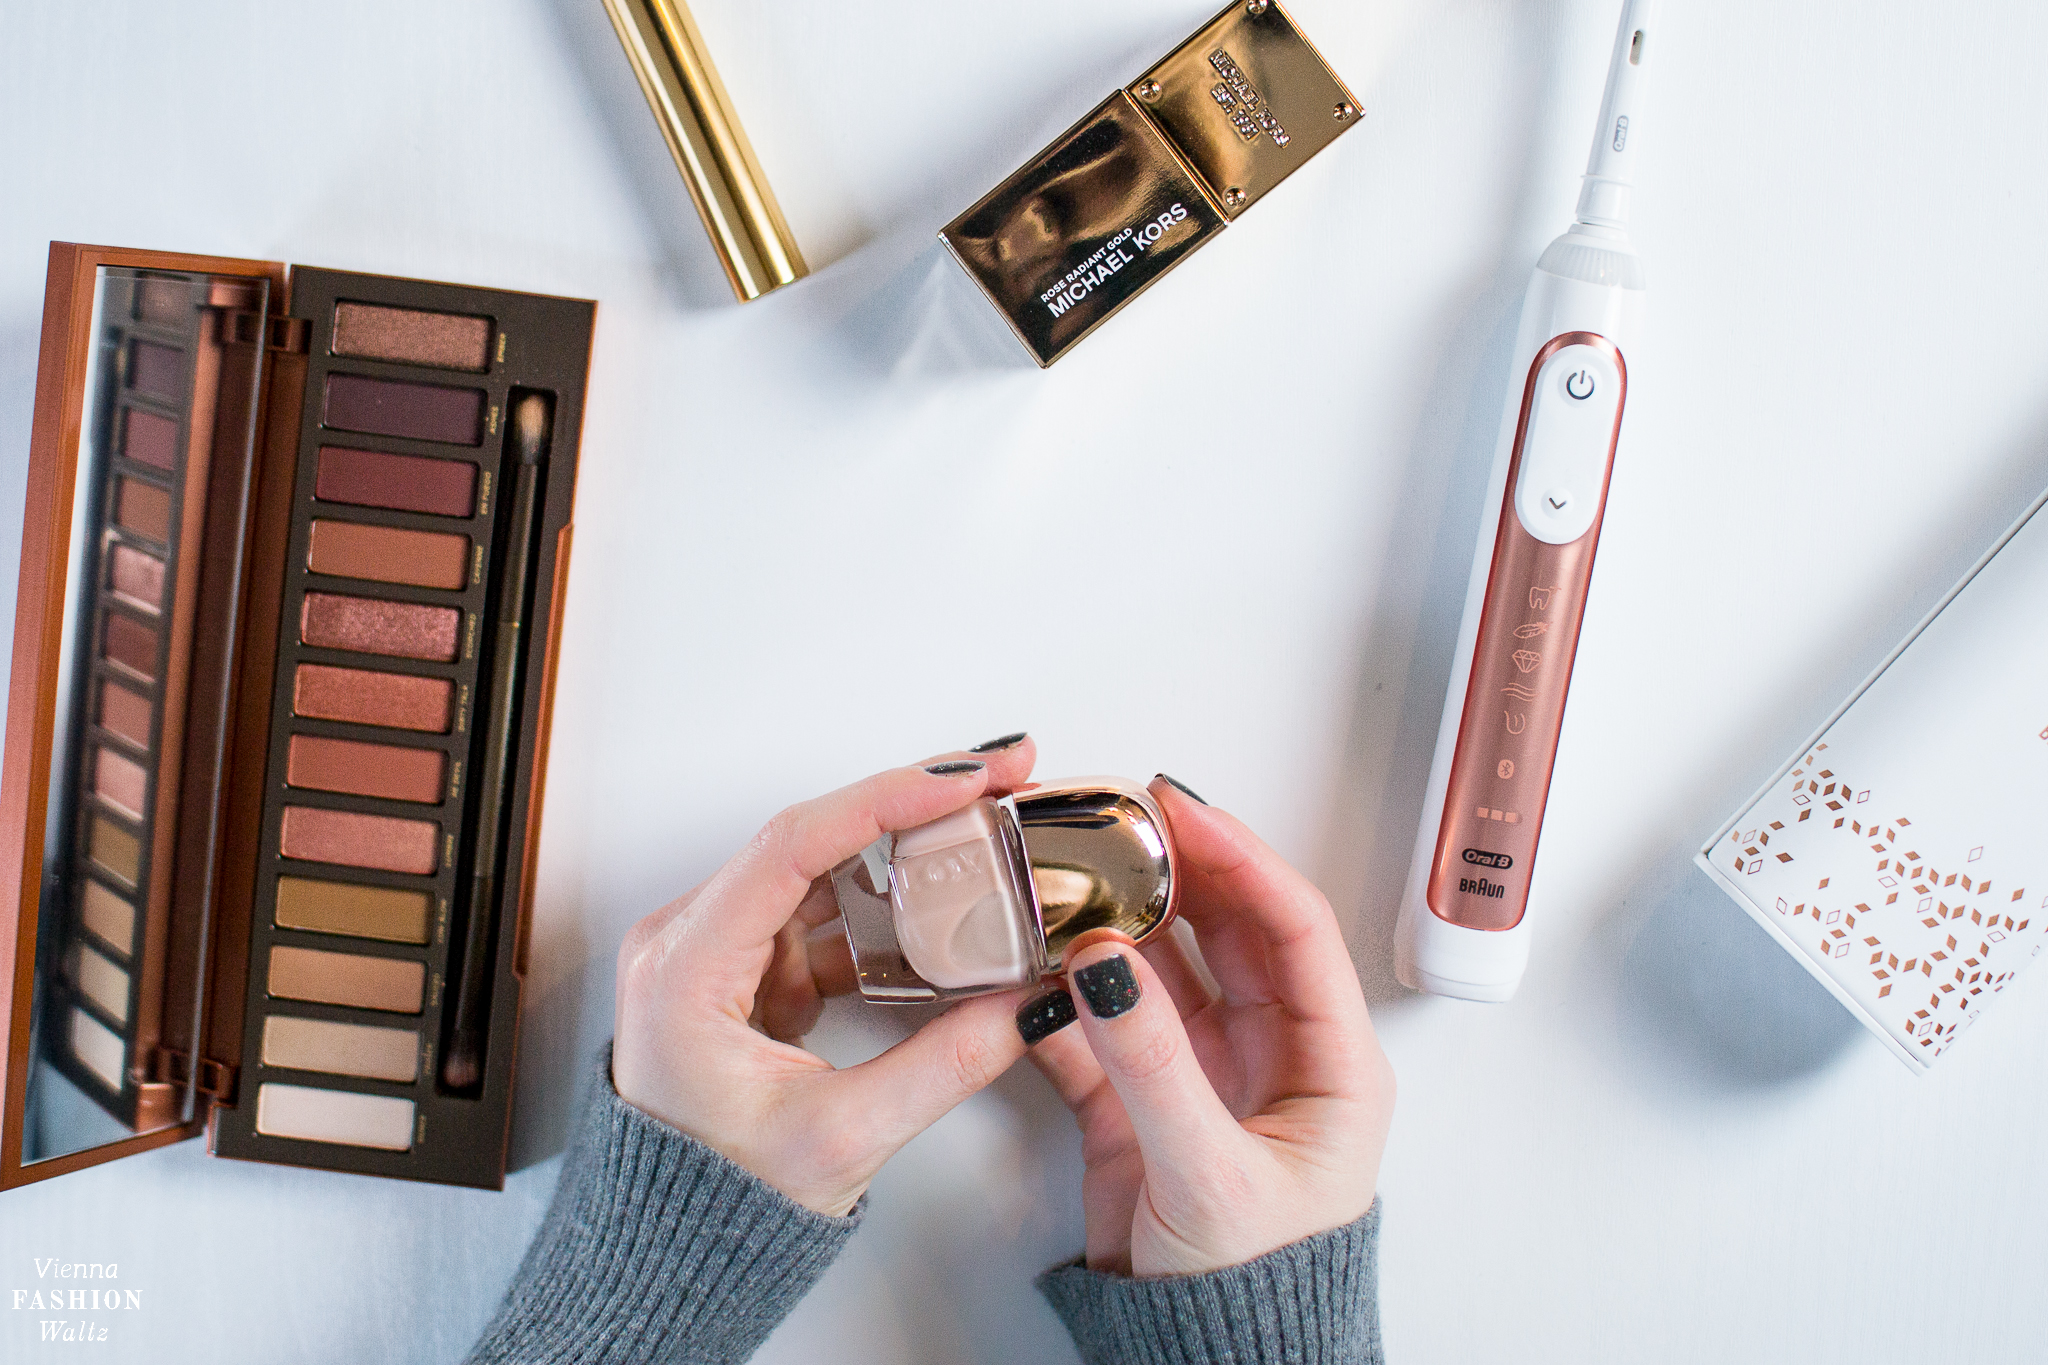 5 things in Roségold Fashion, Beauty und Lifestyleblog Vienna Fashion Waltz Oral B Genius 9000S Rose Gold Urban Decay Naked Heat LOVtreat Lacquer Michael Kors Rose Radiant Gold Perfume Yves Saint Laurent Mascara